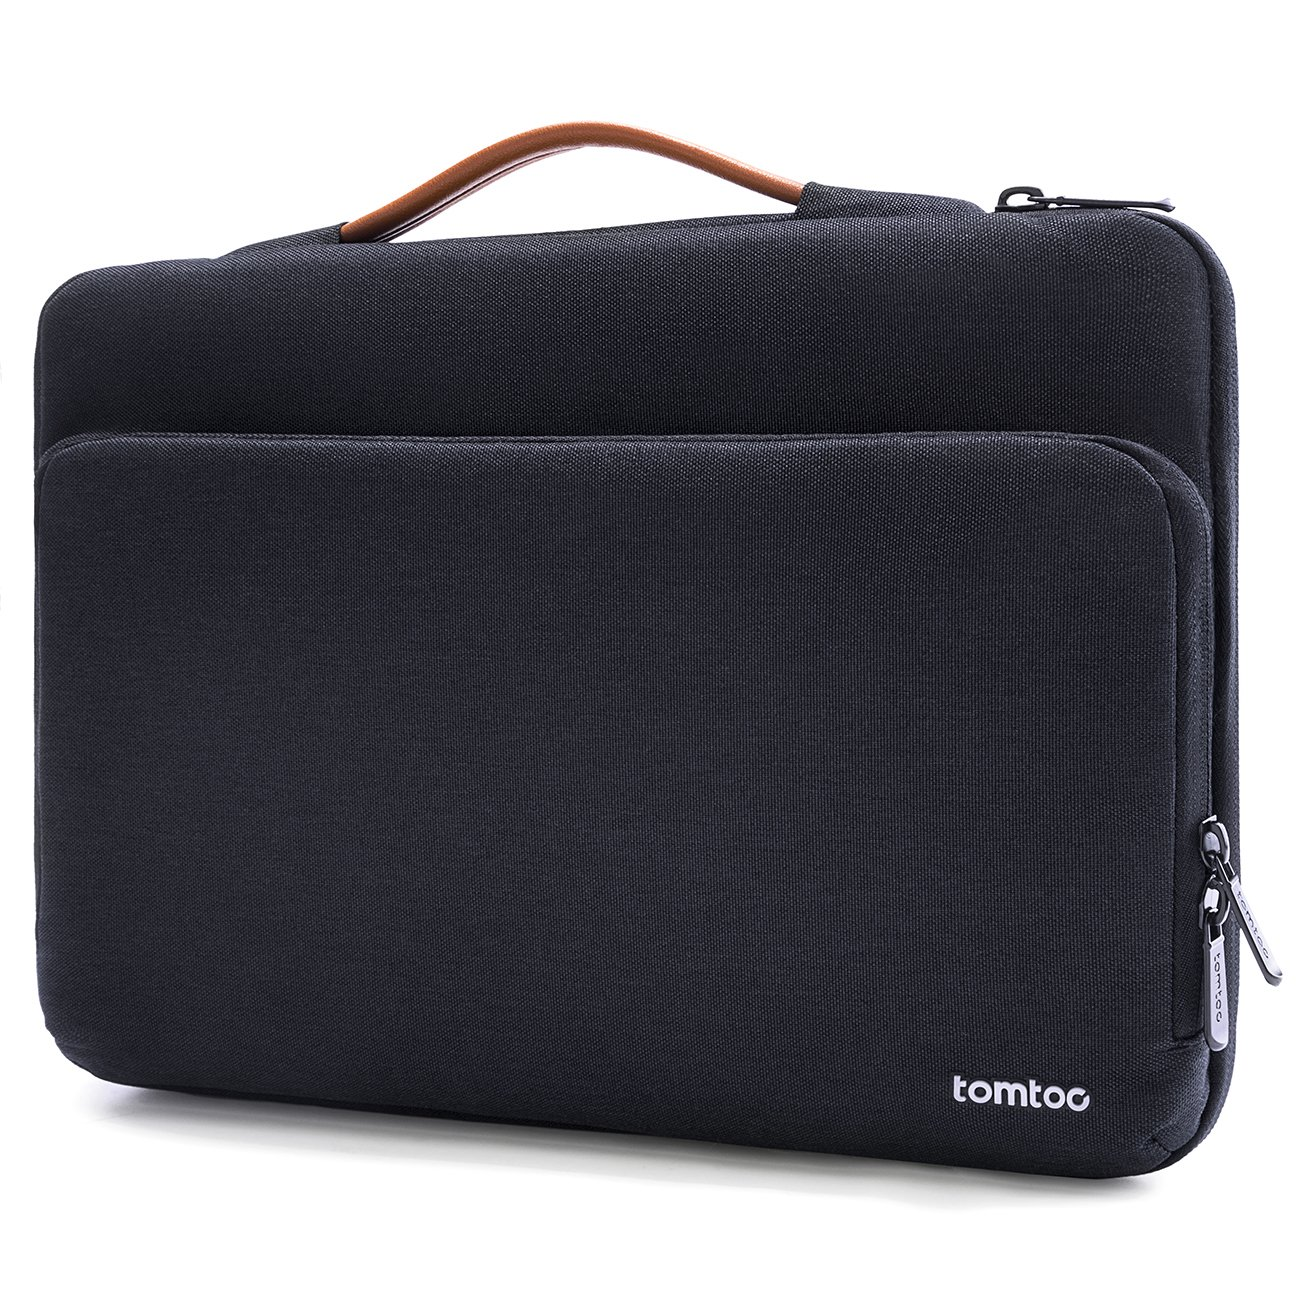 tomtoc 360° Protective Laptop Sleeve Case Bag Fit for 15-15.6 Inch HP Dell Asus Acer ThinkPad Samsung Laptop Chromebook Notebook Tablet, with Handle Accessory Pocket and CornerArmor